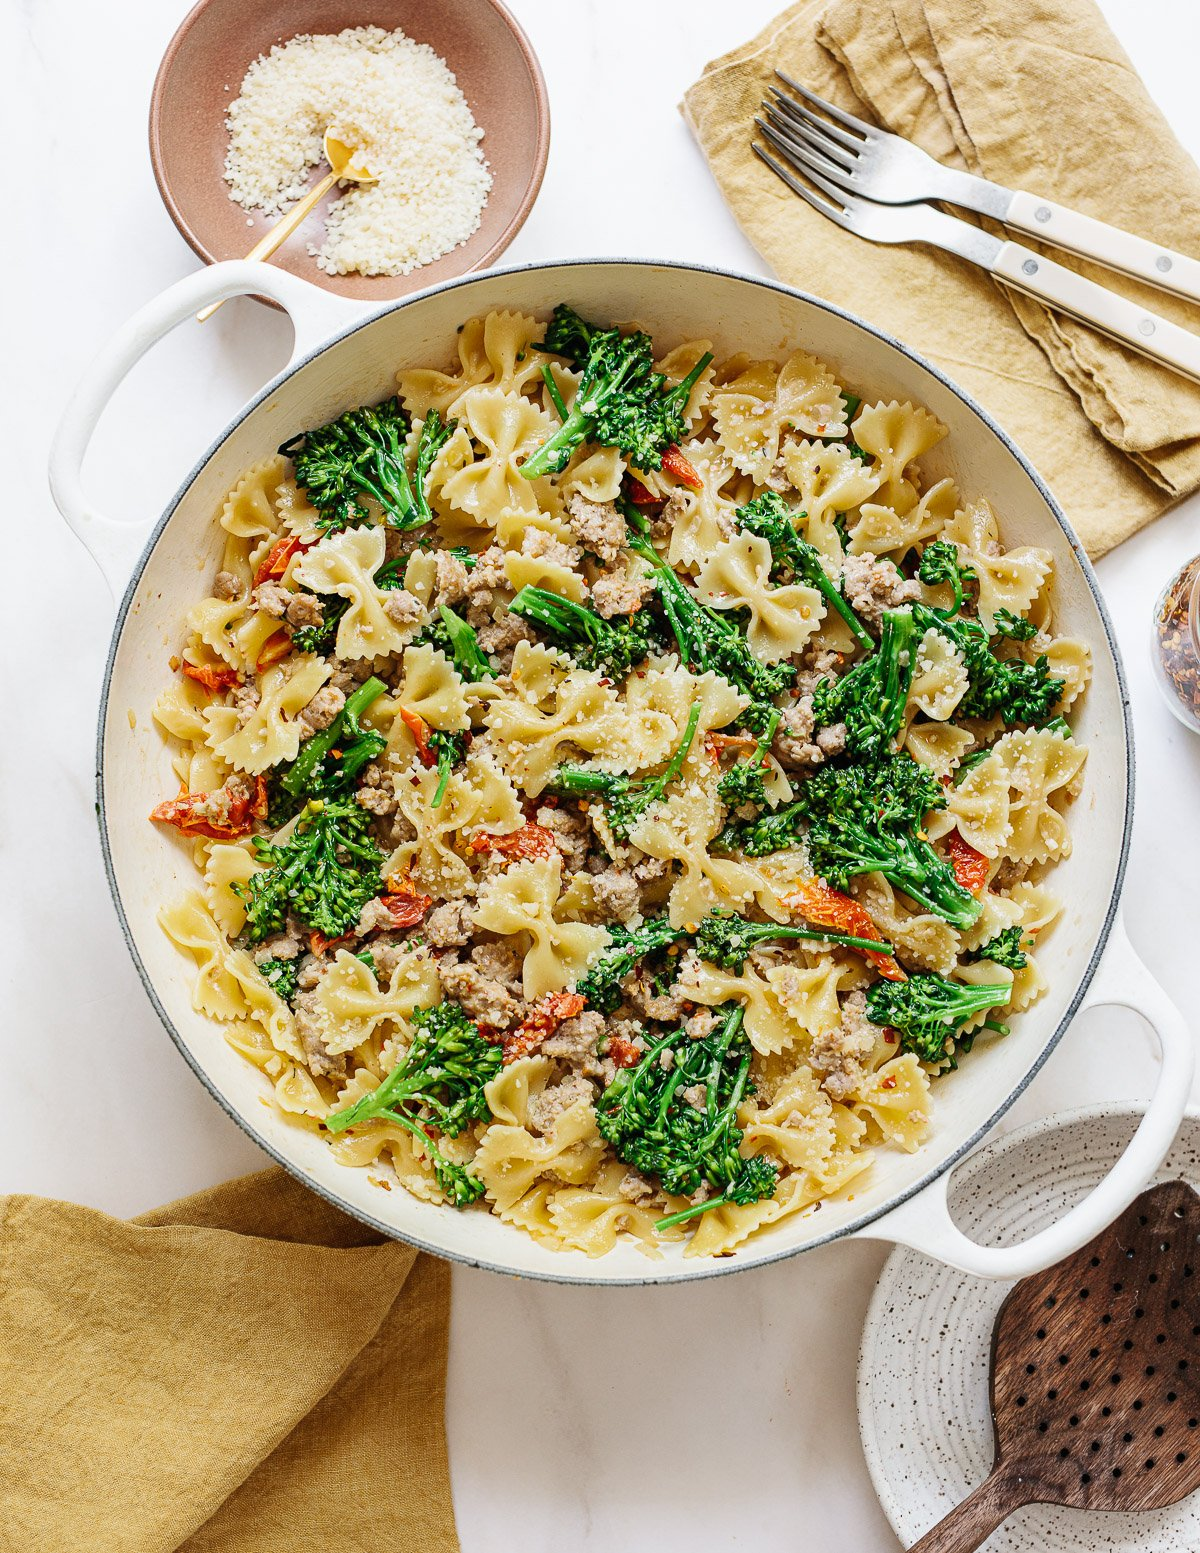 A photo of a white braising pan full of cooked bow tie pasta in a sausage and broccoli sauce.